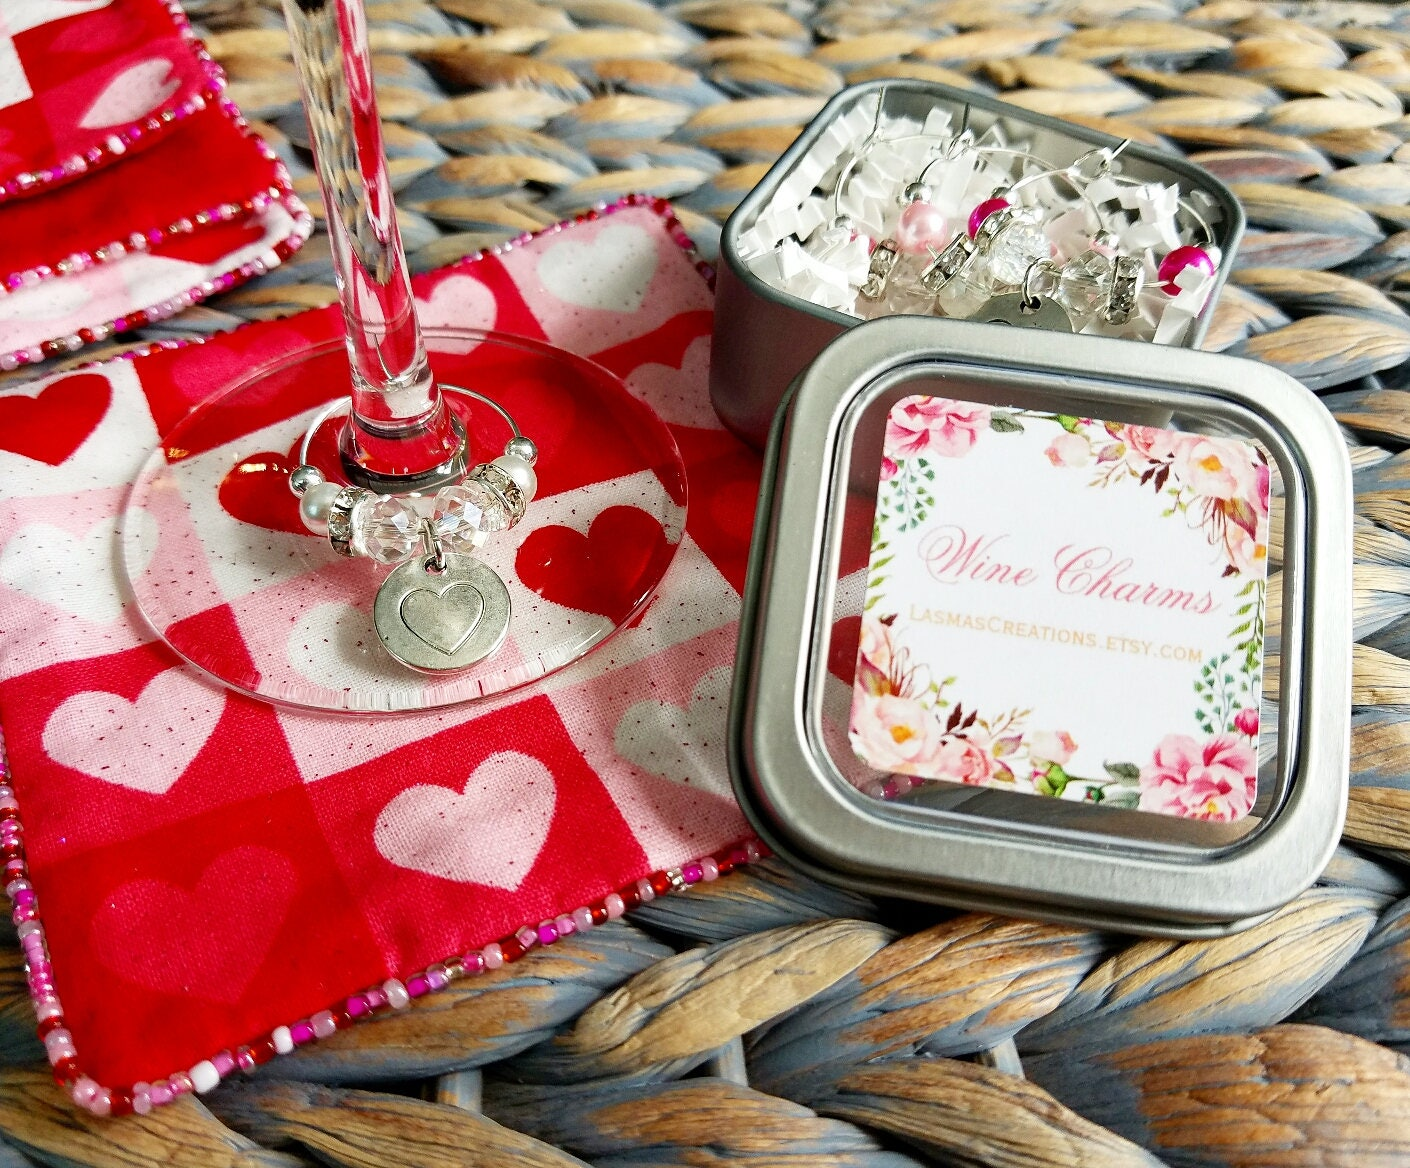 Bride to Be Gift 4 Heart Wine Charms 4 Pink Fabric